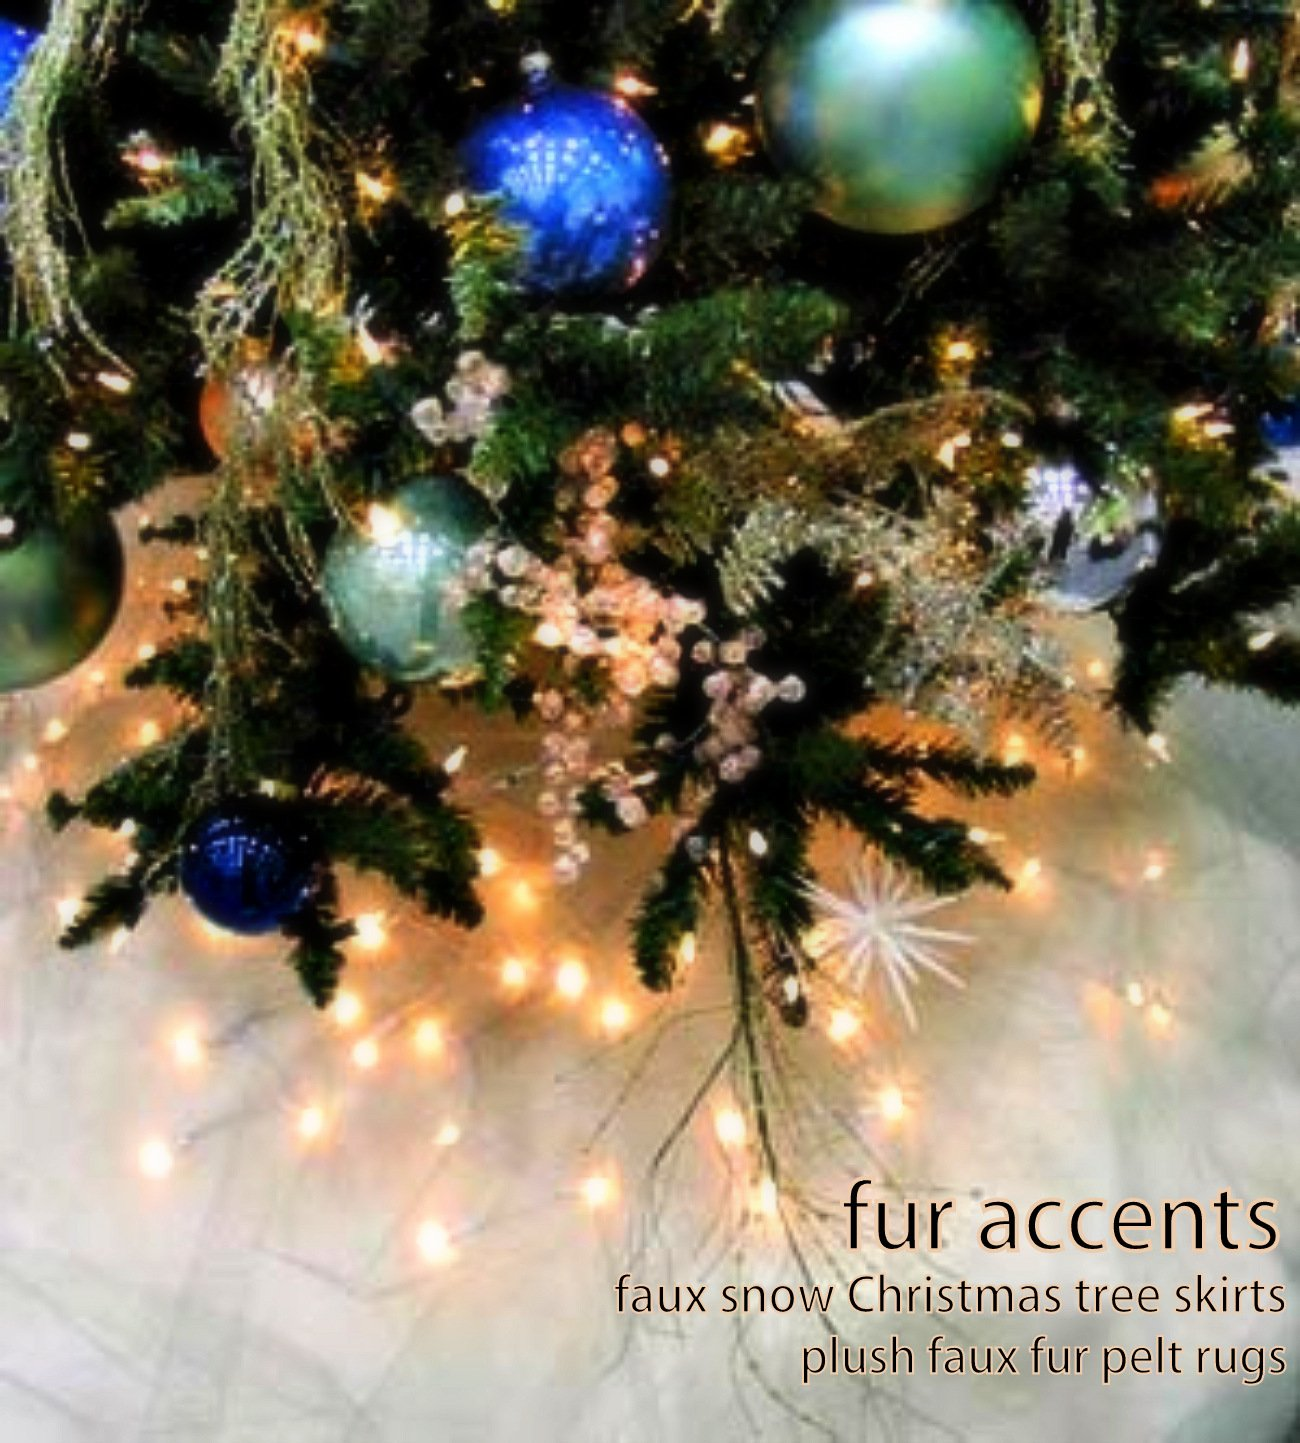 Fur Accents Christmas Holiday Tree Skirt, Plush Shaggy Faux Fur (Snow White, 70'' Diameter) by Fur Accents (Image #2)